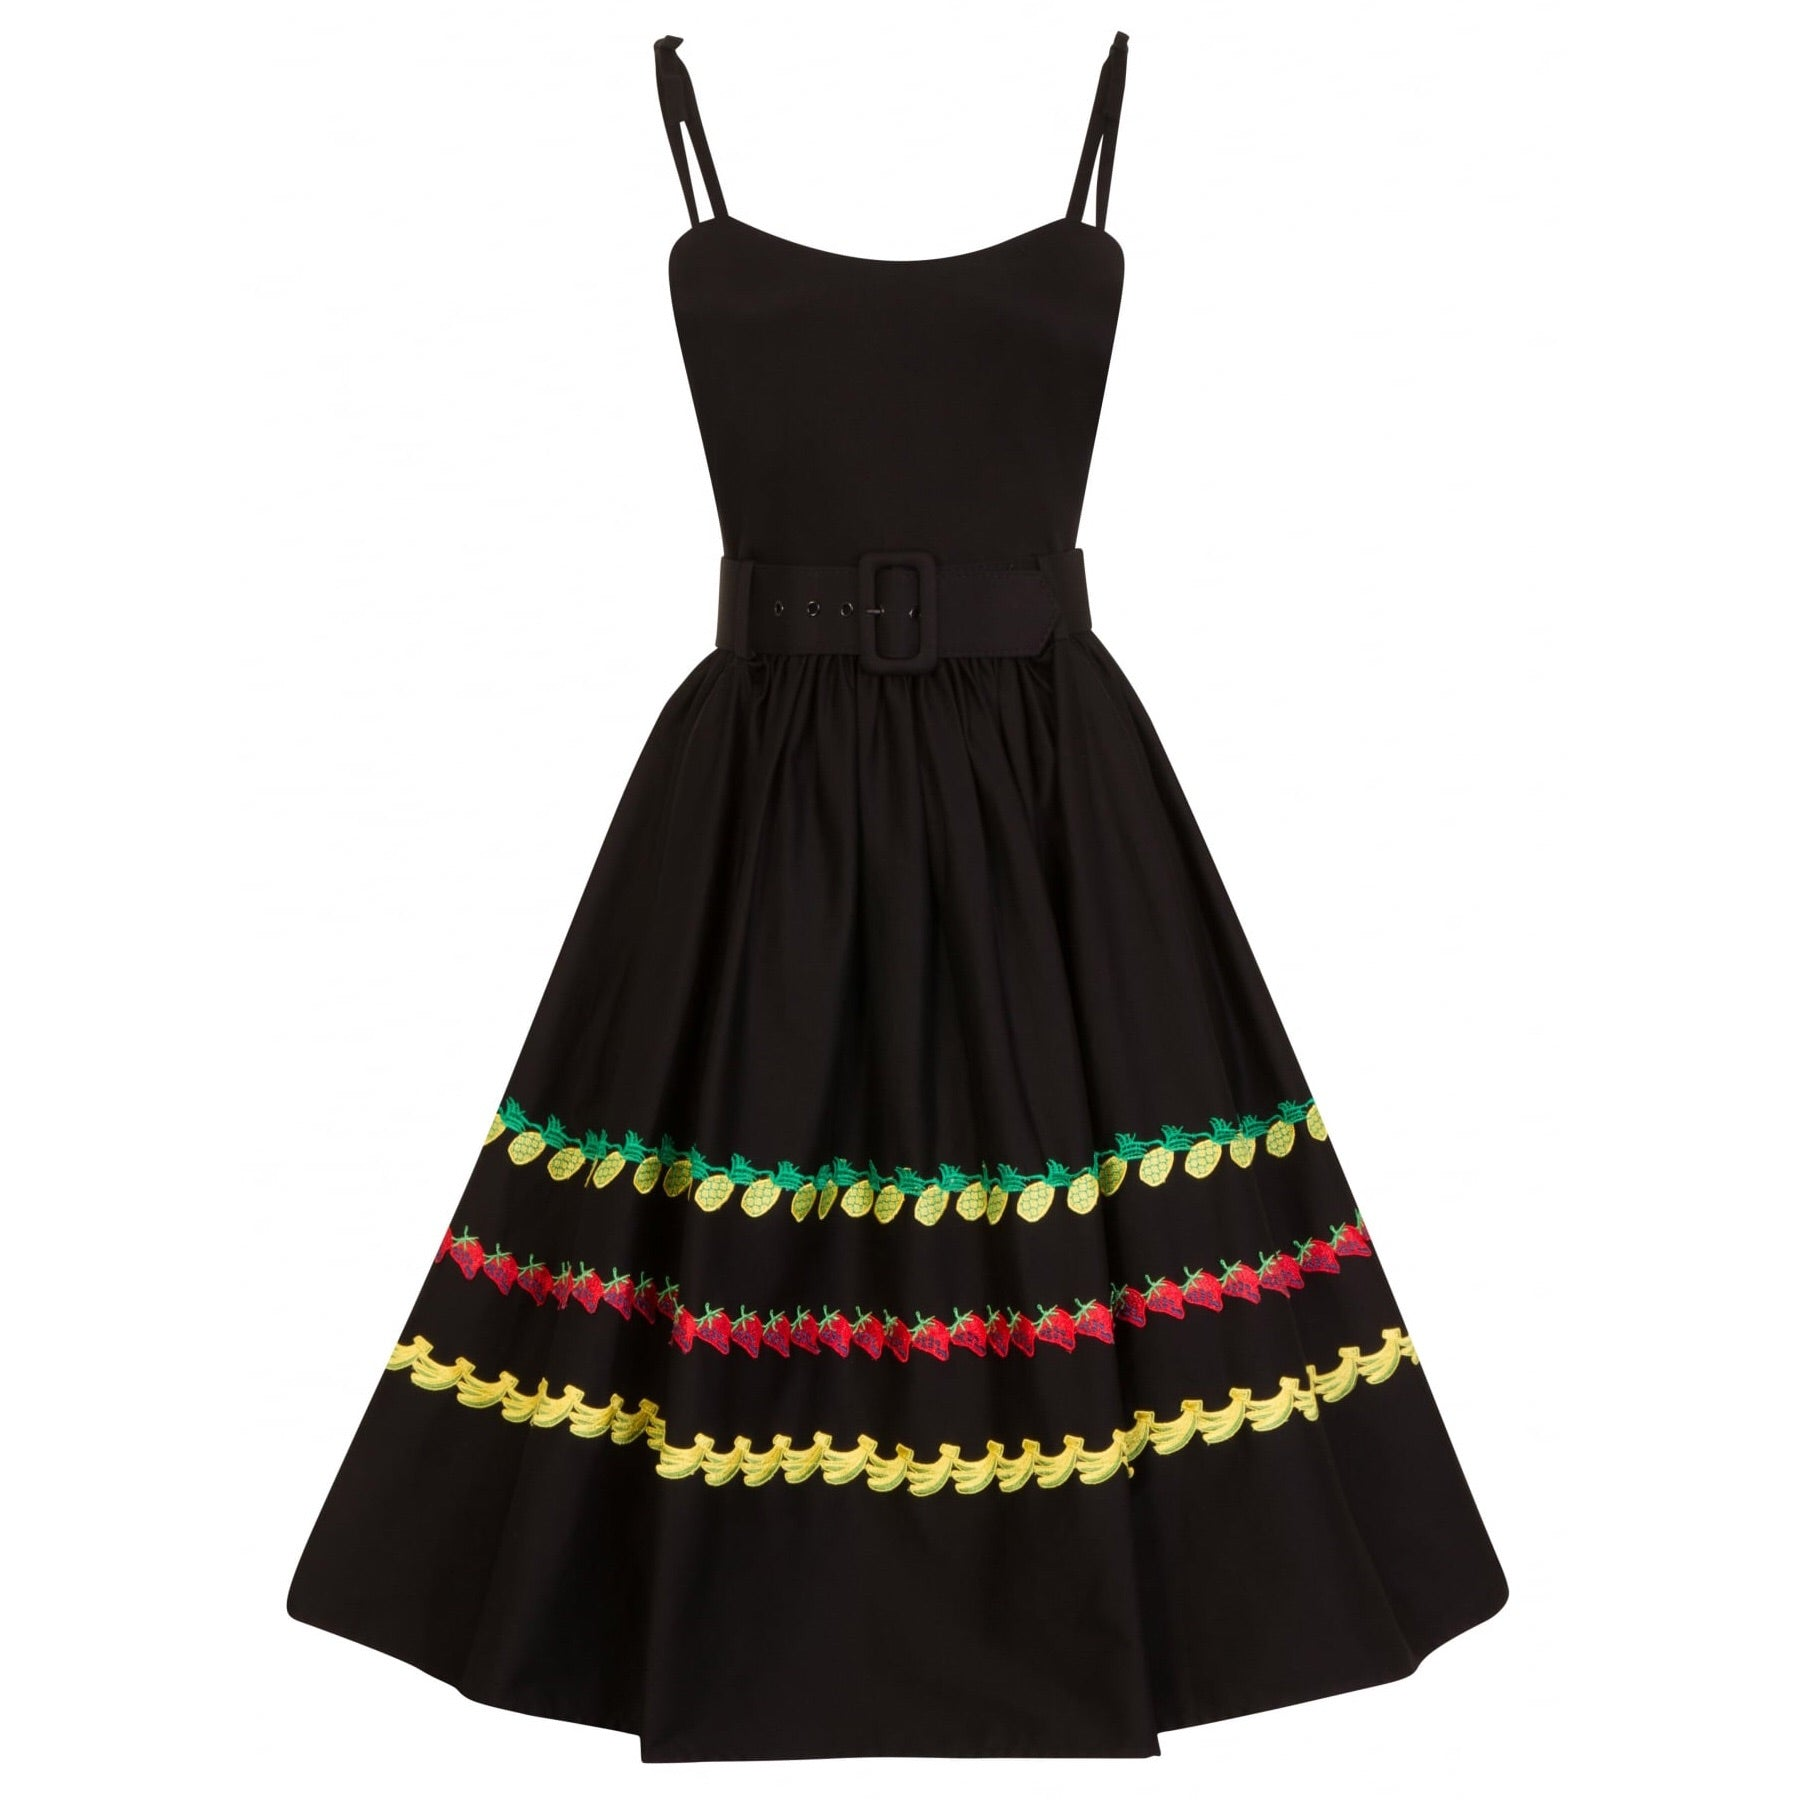 658f1f2ce7ee 50s Swing Dresses - Vintage Inspired Styles   Pretty Kitty Fashion ...